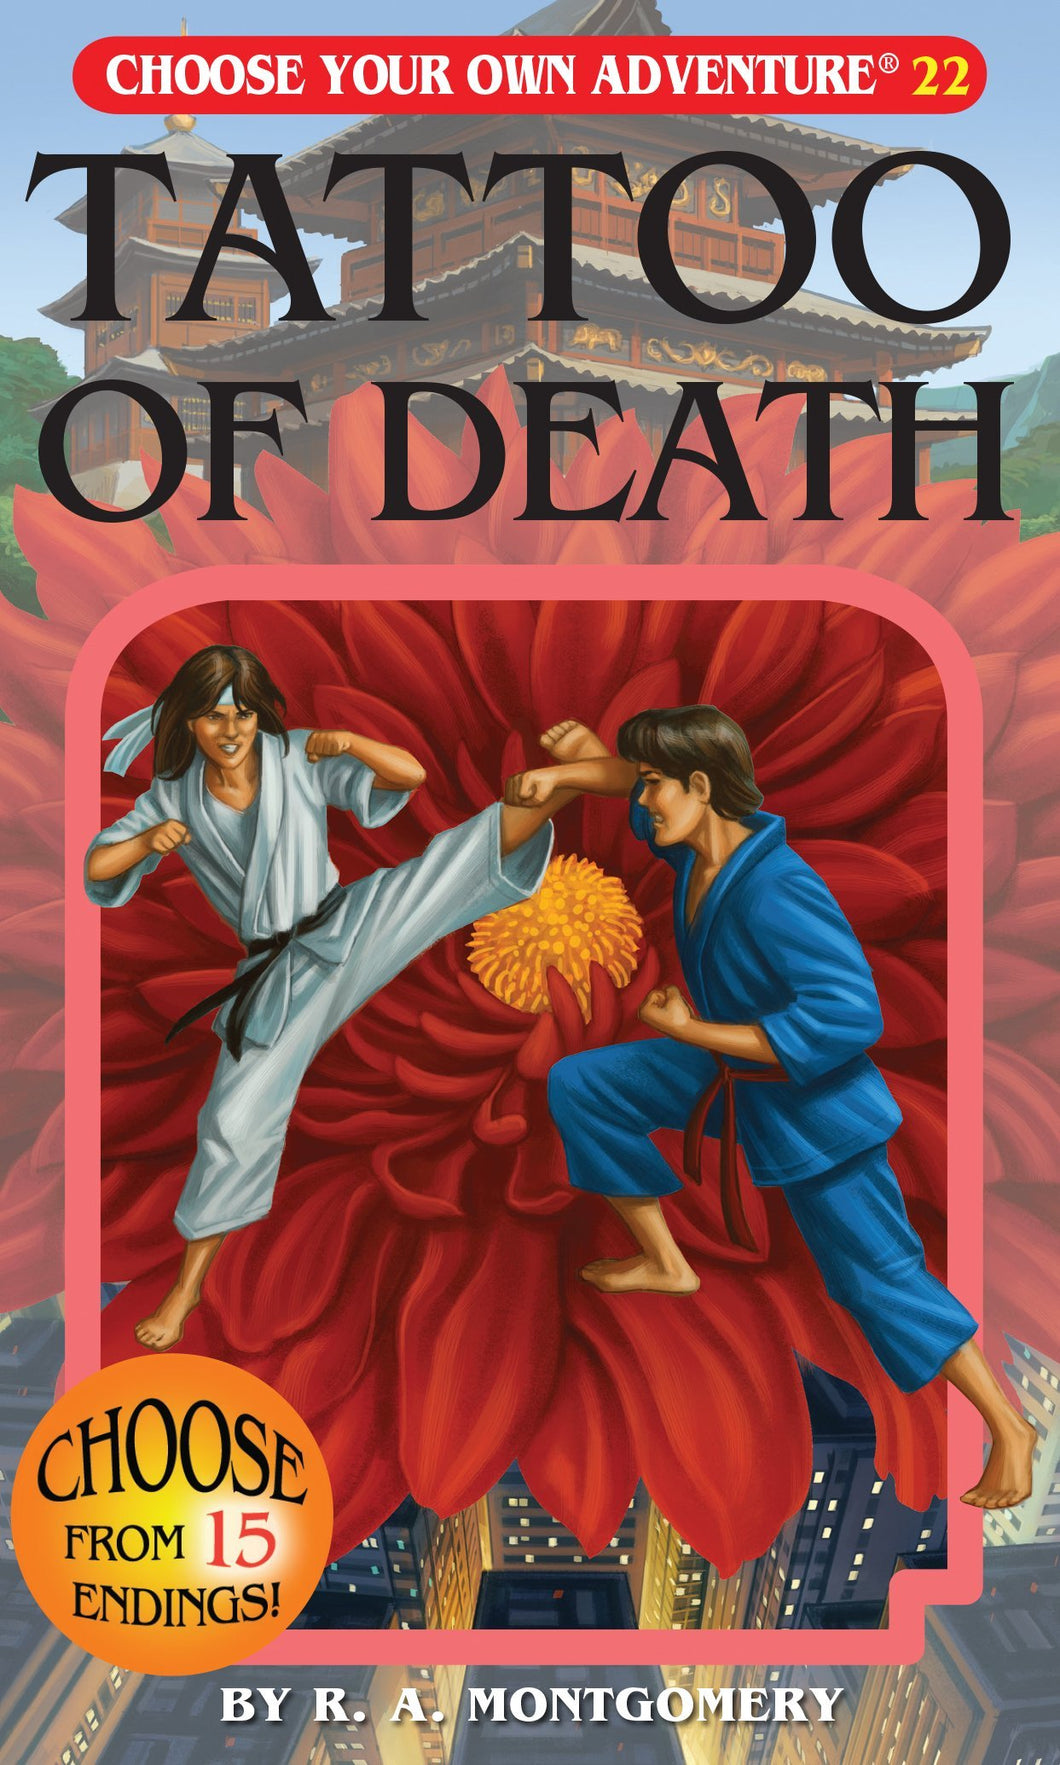 Choose Your Own Adventure Book-Tattoo of Death#22